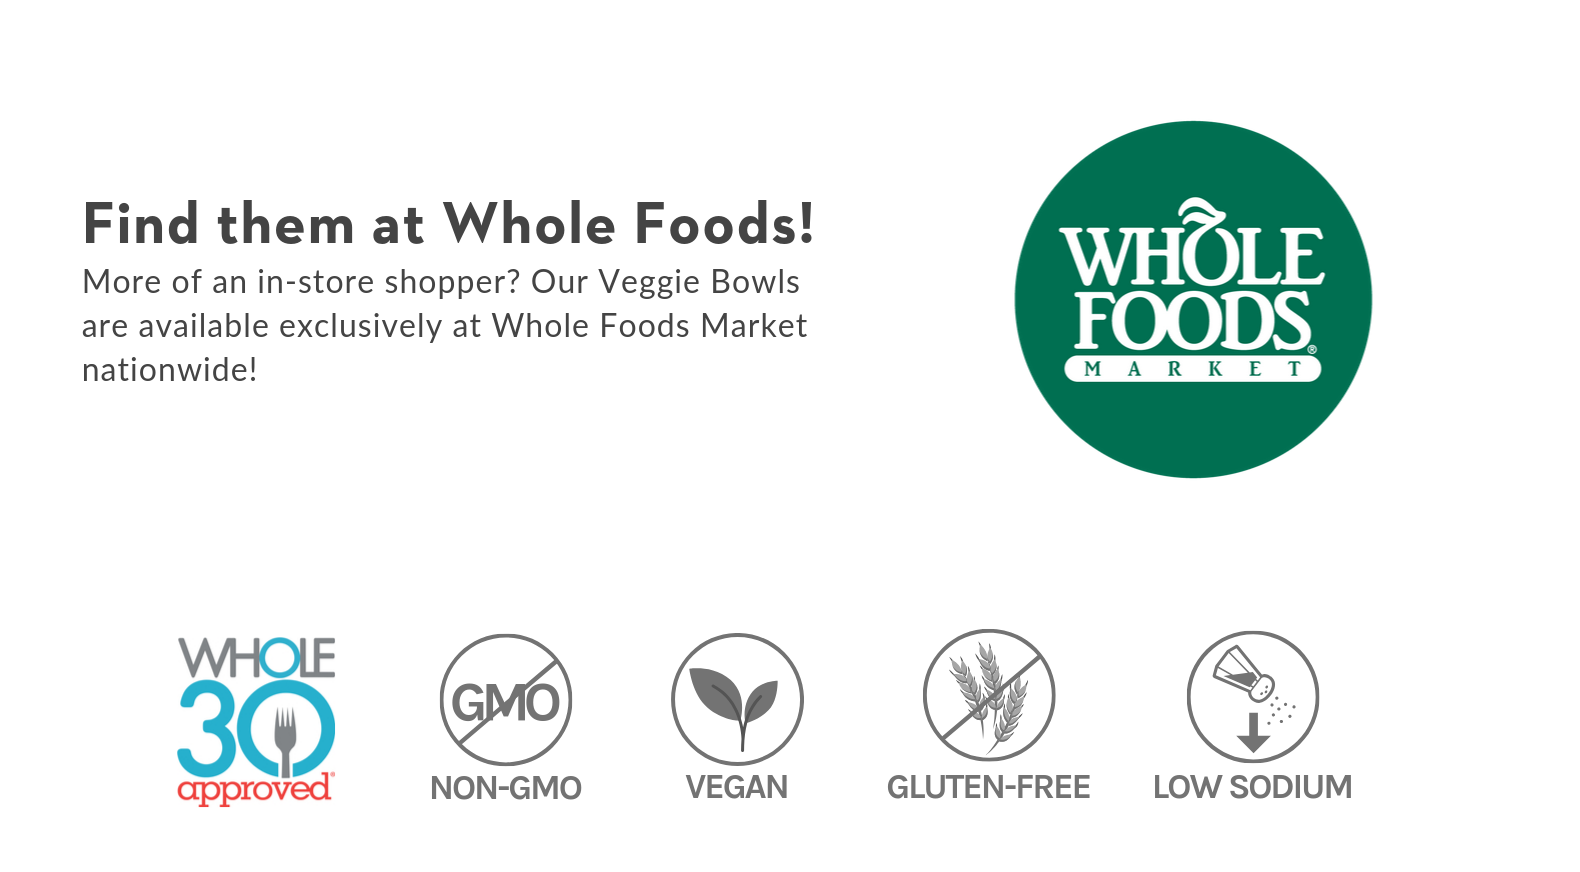 Available at Whole Foods Market nationwide! Whole30 Approved, Non-GMO, Vegan, Gluten-Free, Low Sodium.